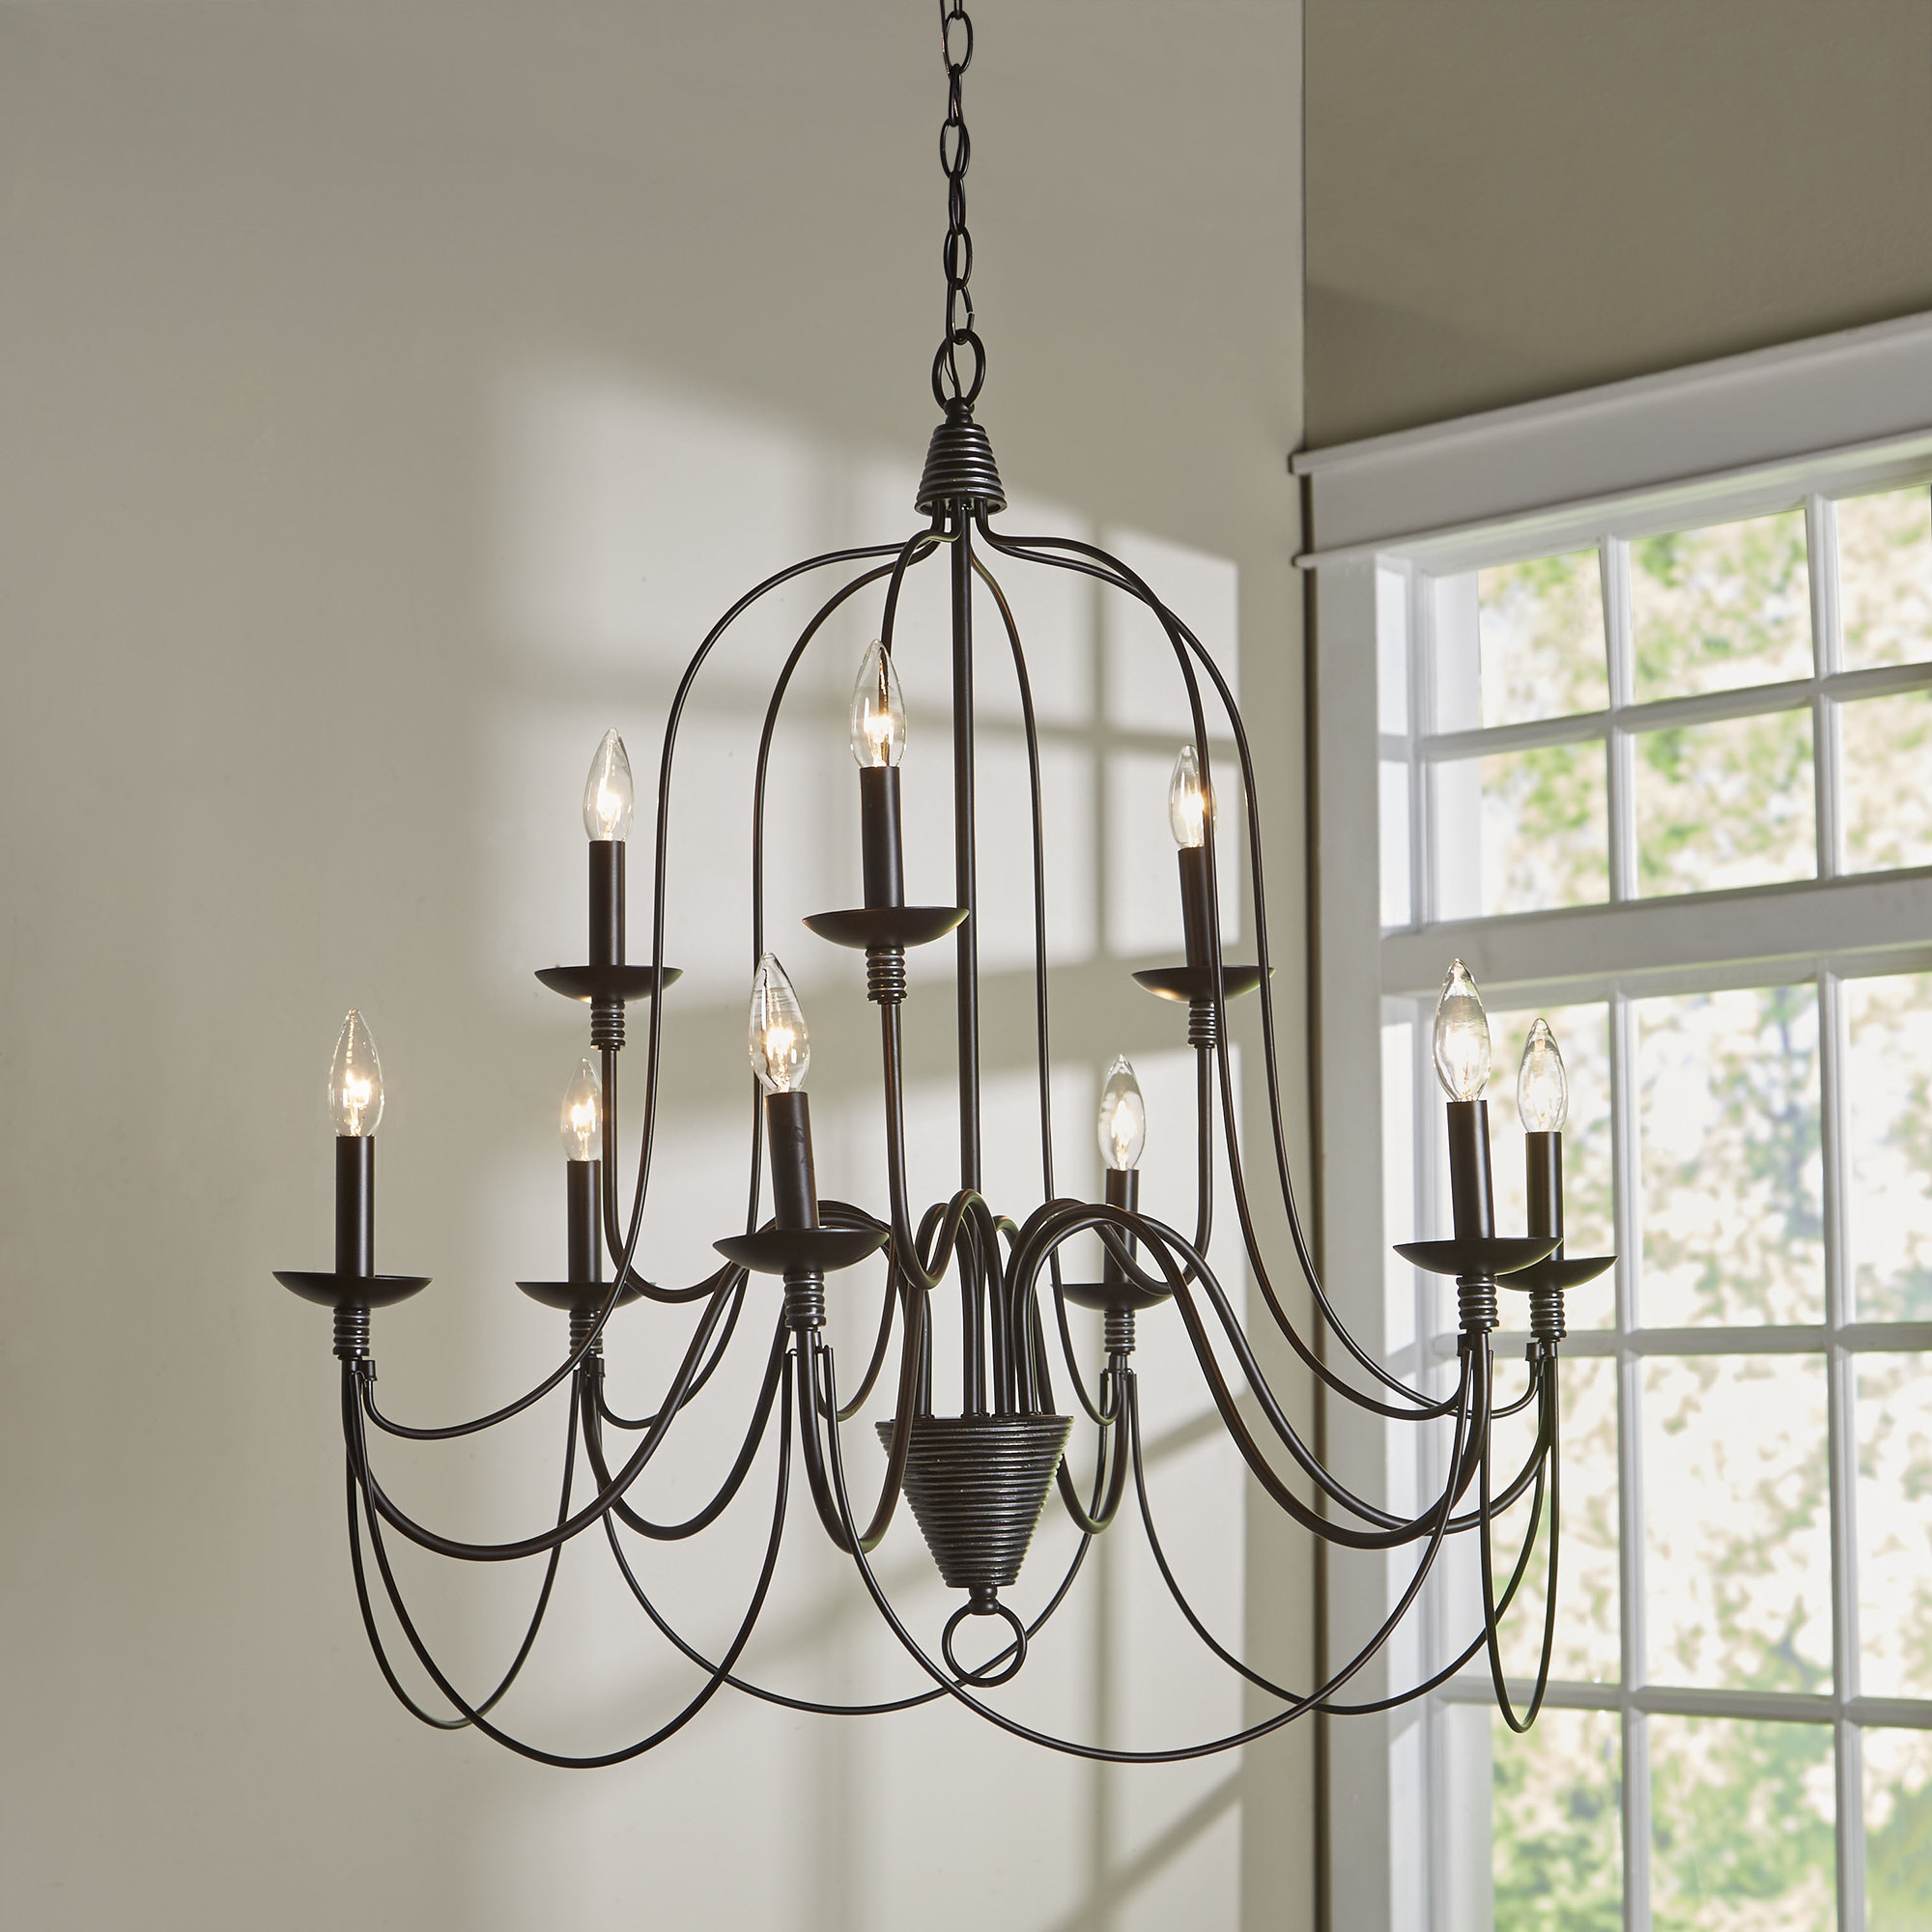 Bouchette Traditional 6-Light Candle Style Chandeliers within 2019 Watford 9-Light Candle Style Chandelier